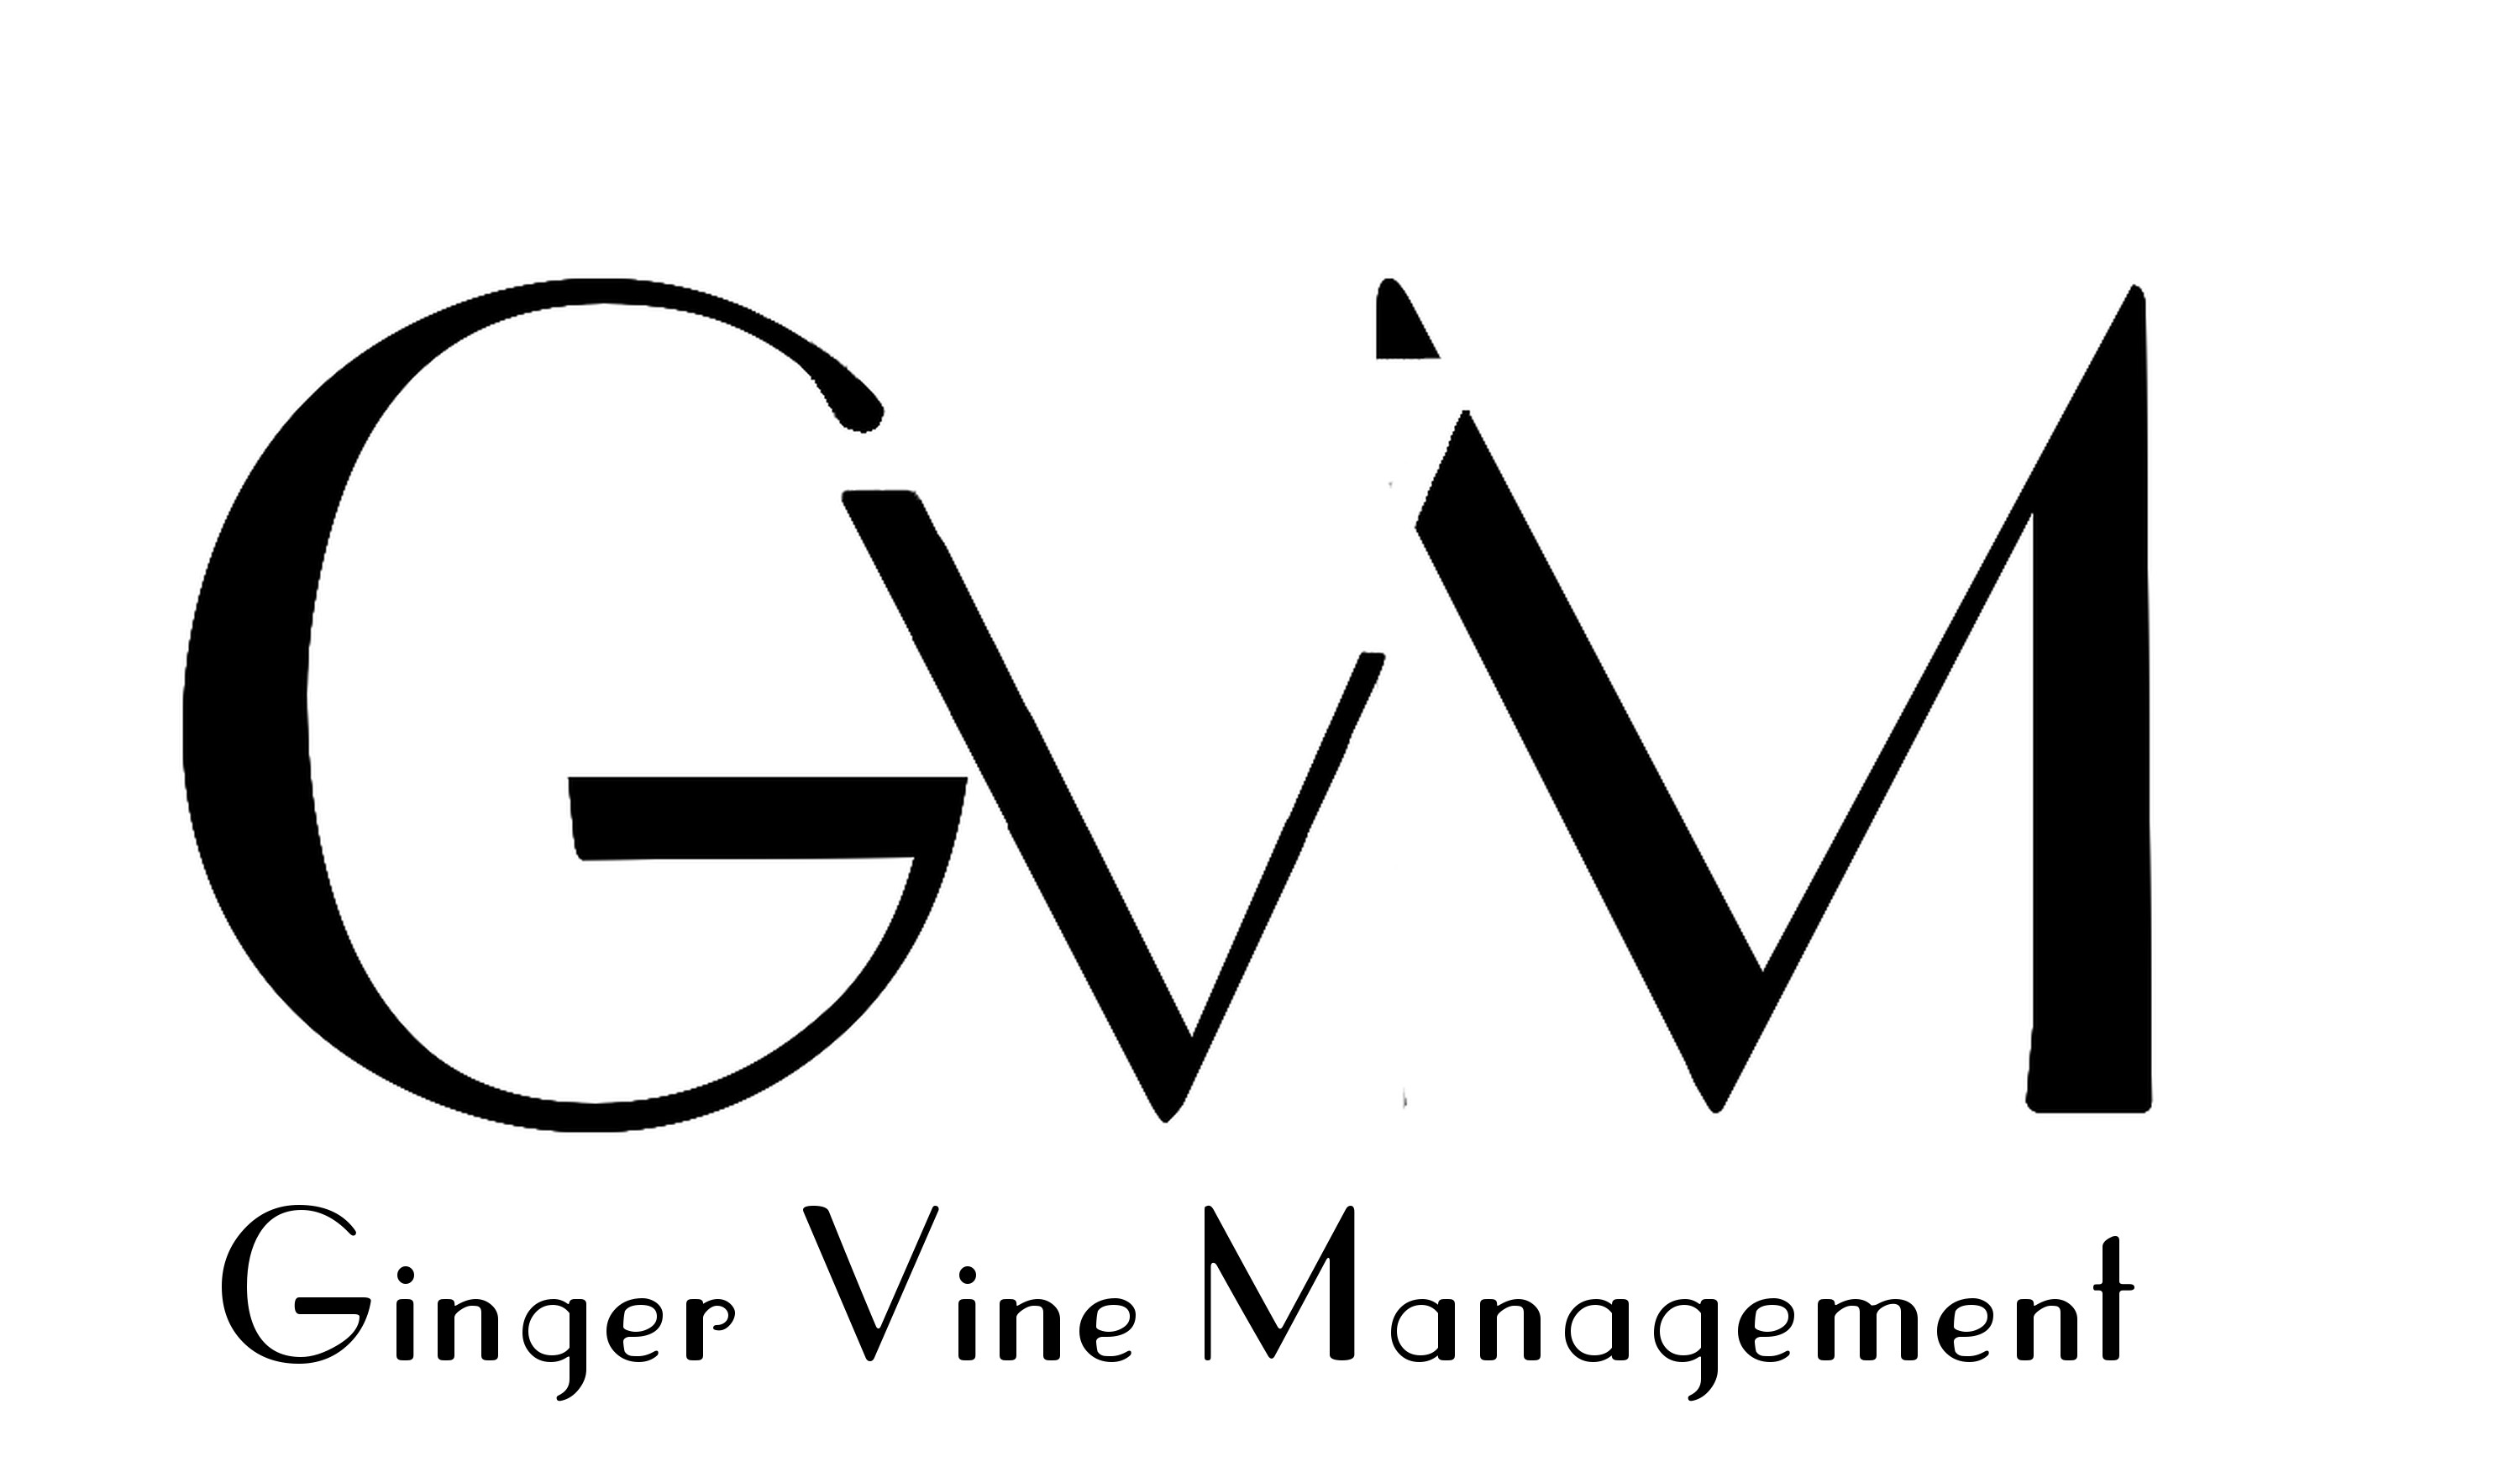 Ginger Vine Management logo